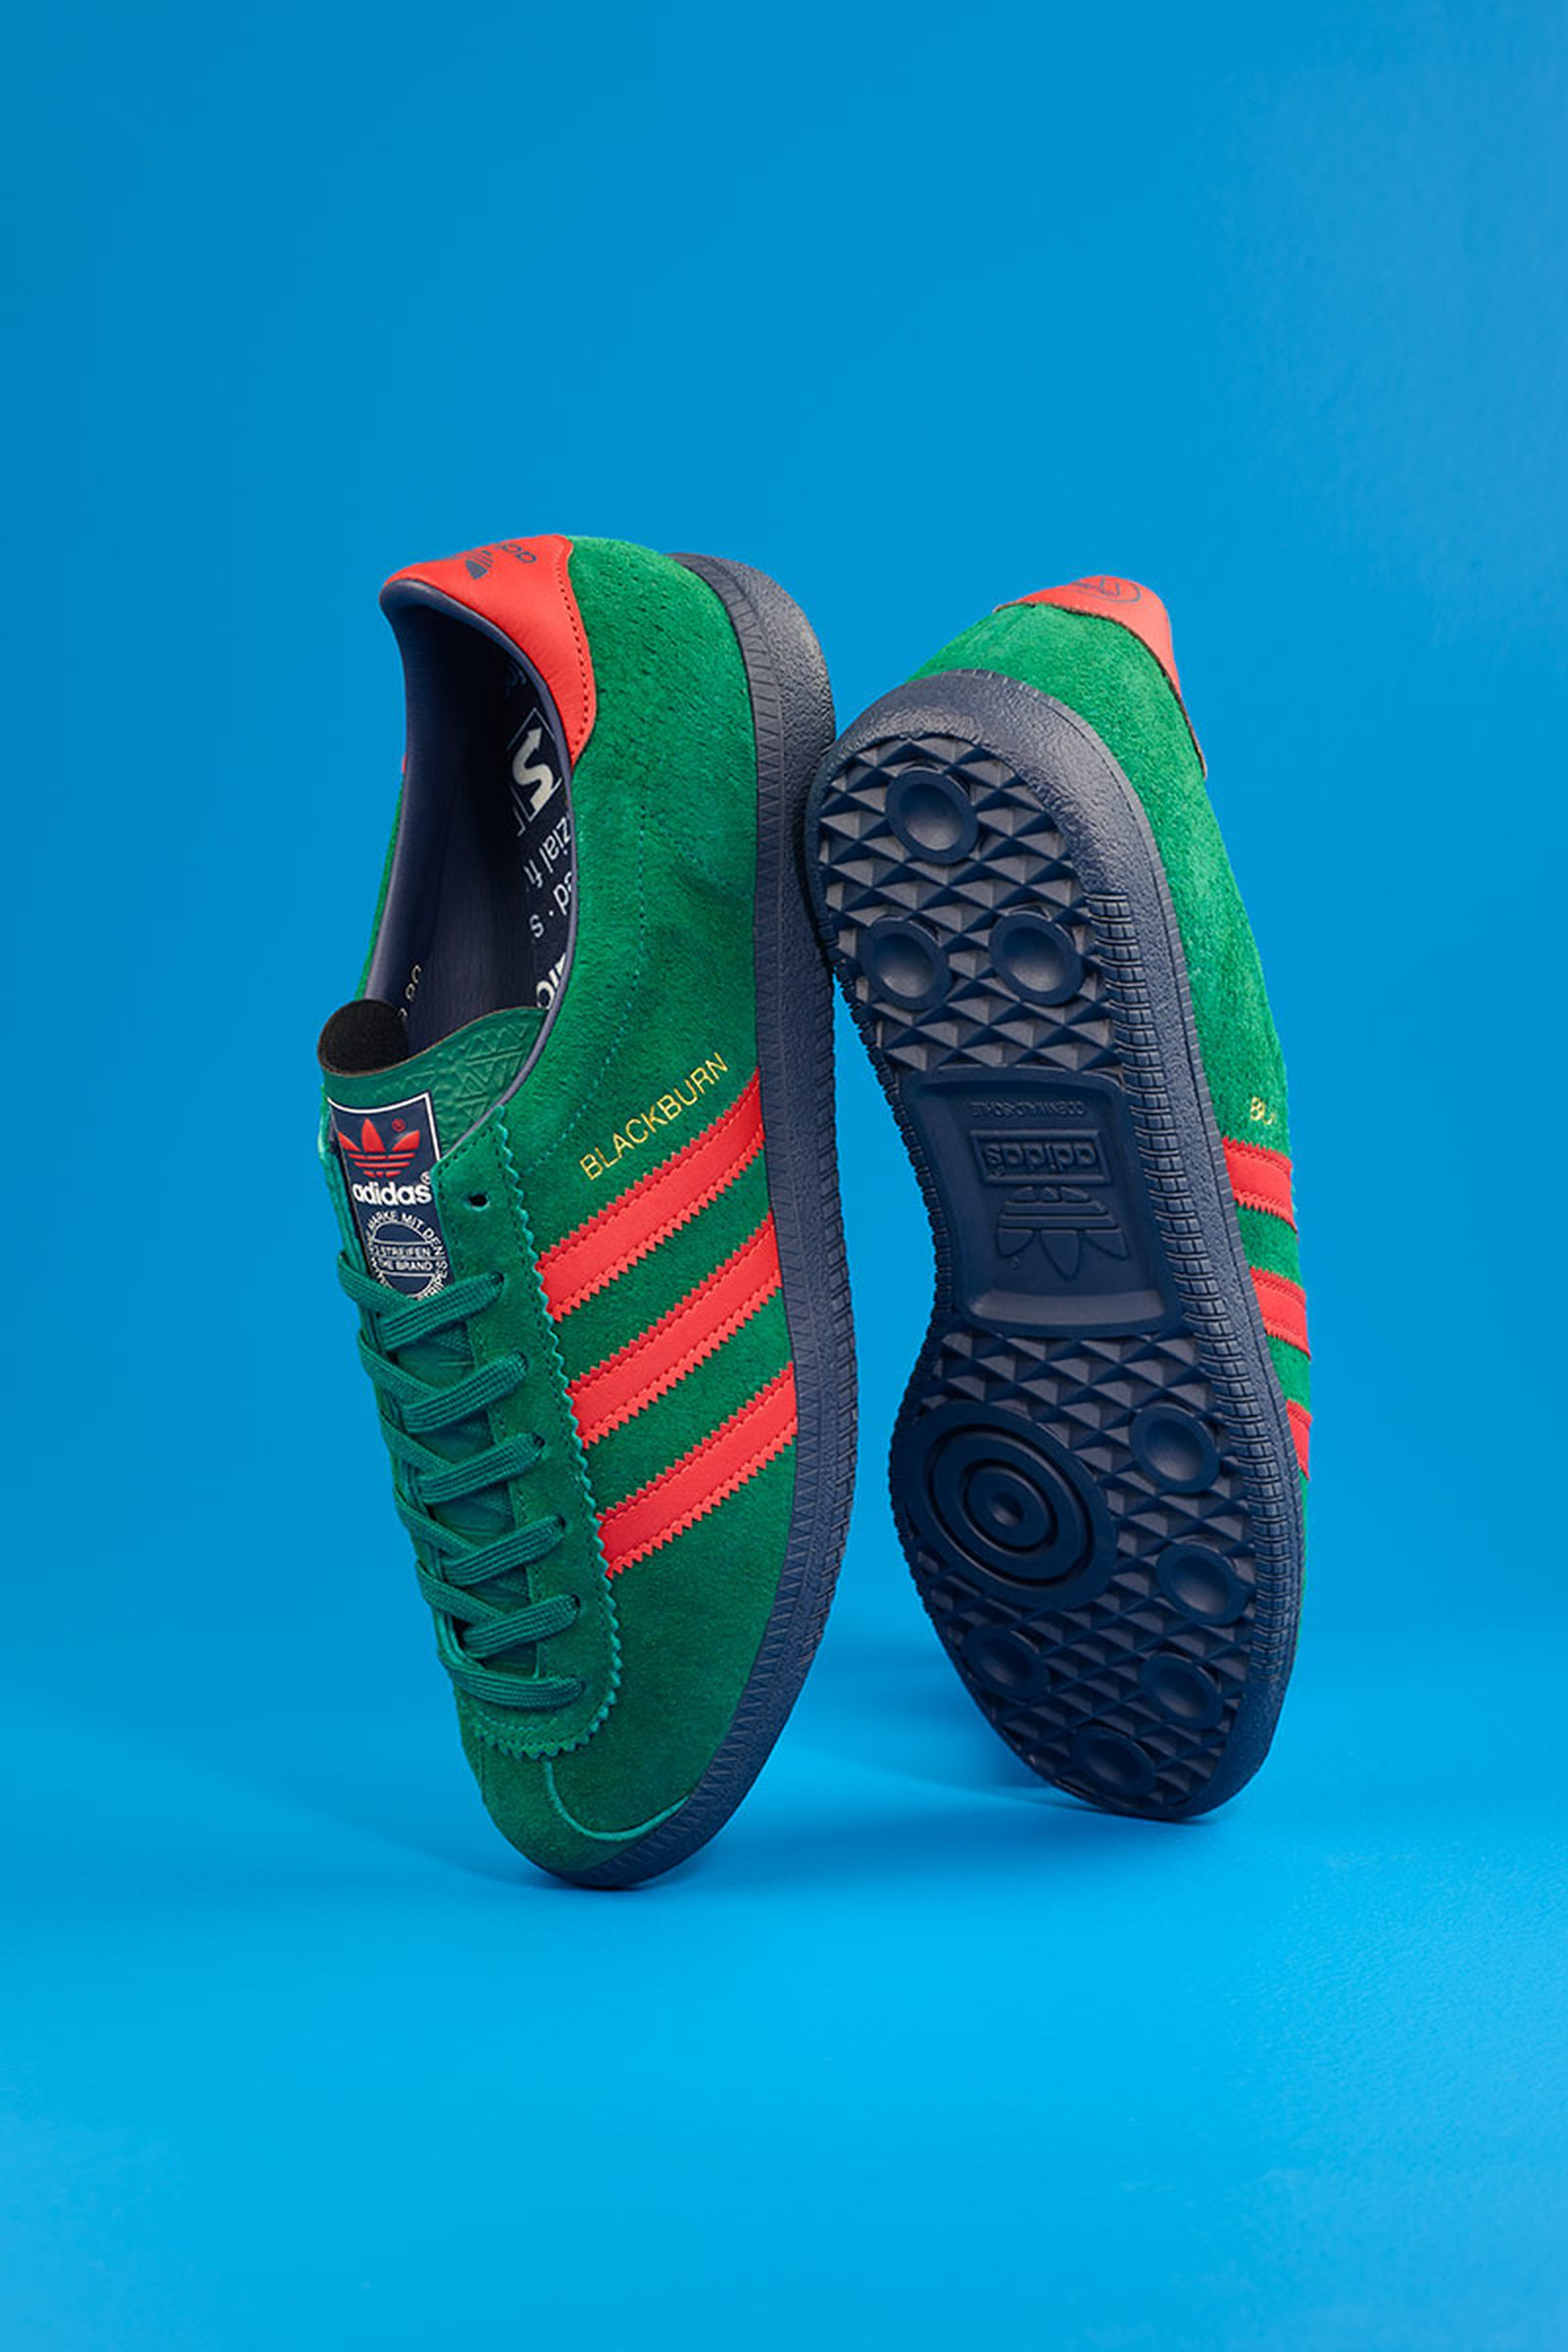 adidas blackburn spzl green red